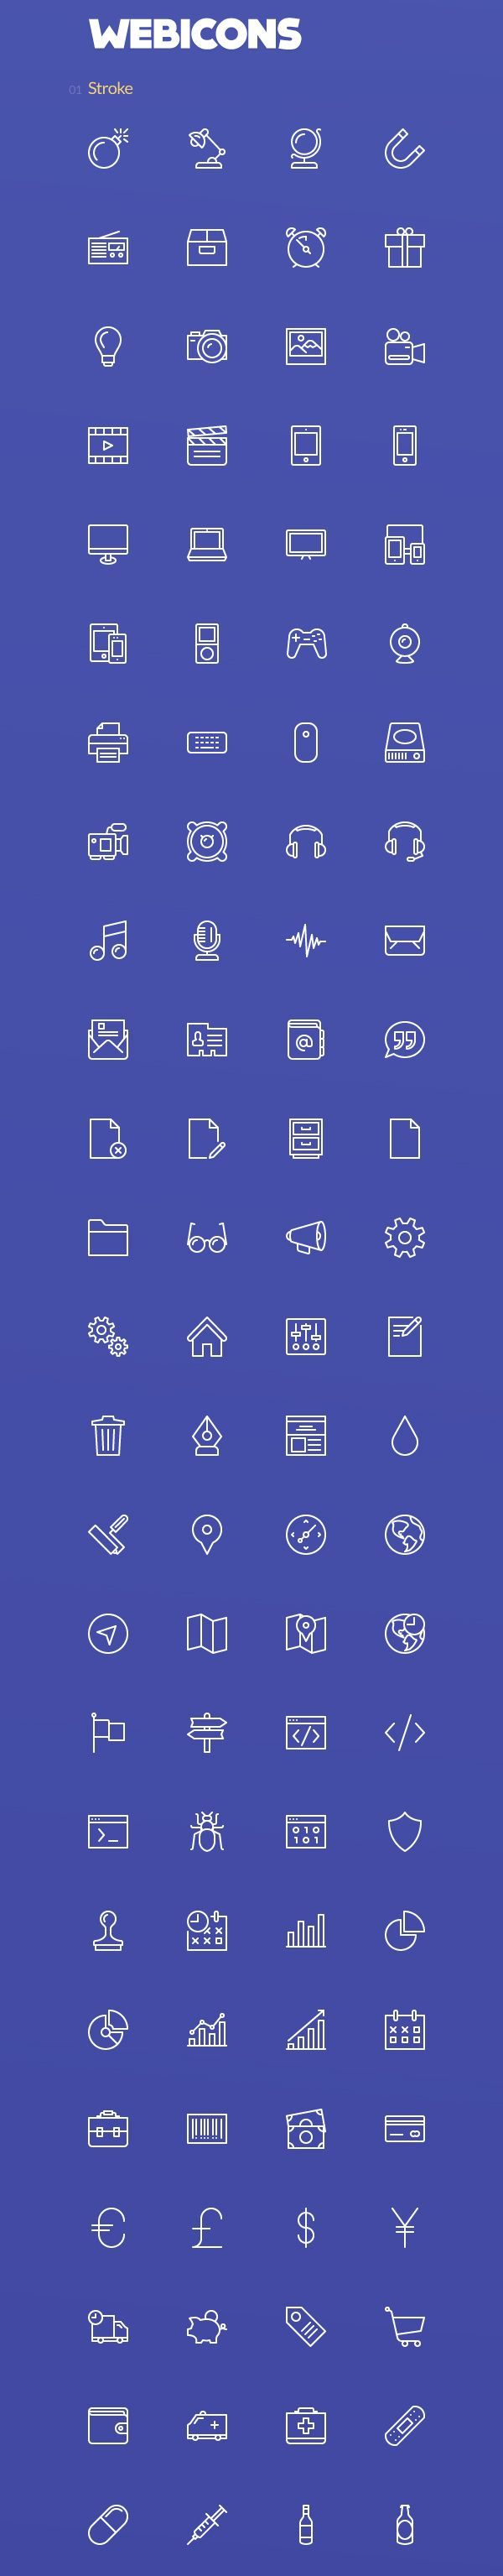 Gumi Icons - 49 Best Icons Images On Pinterest